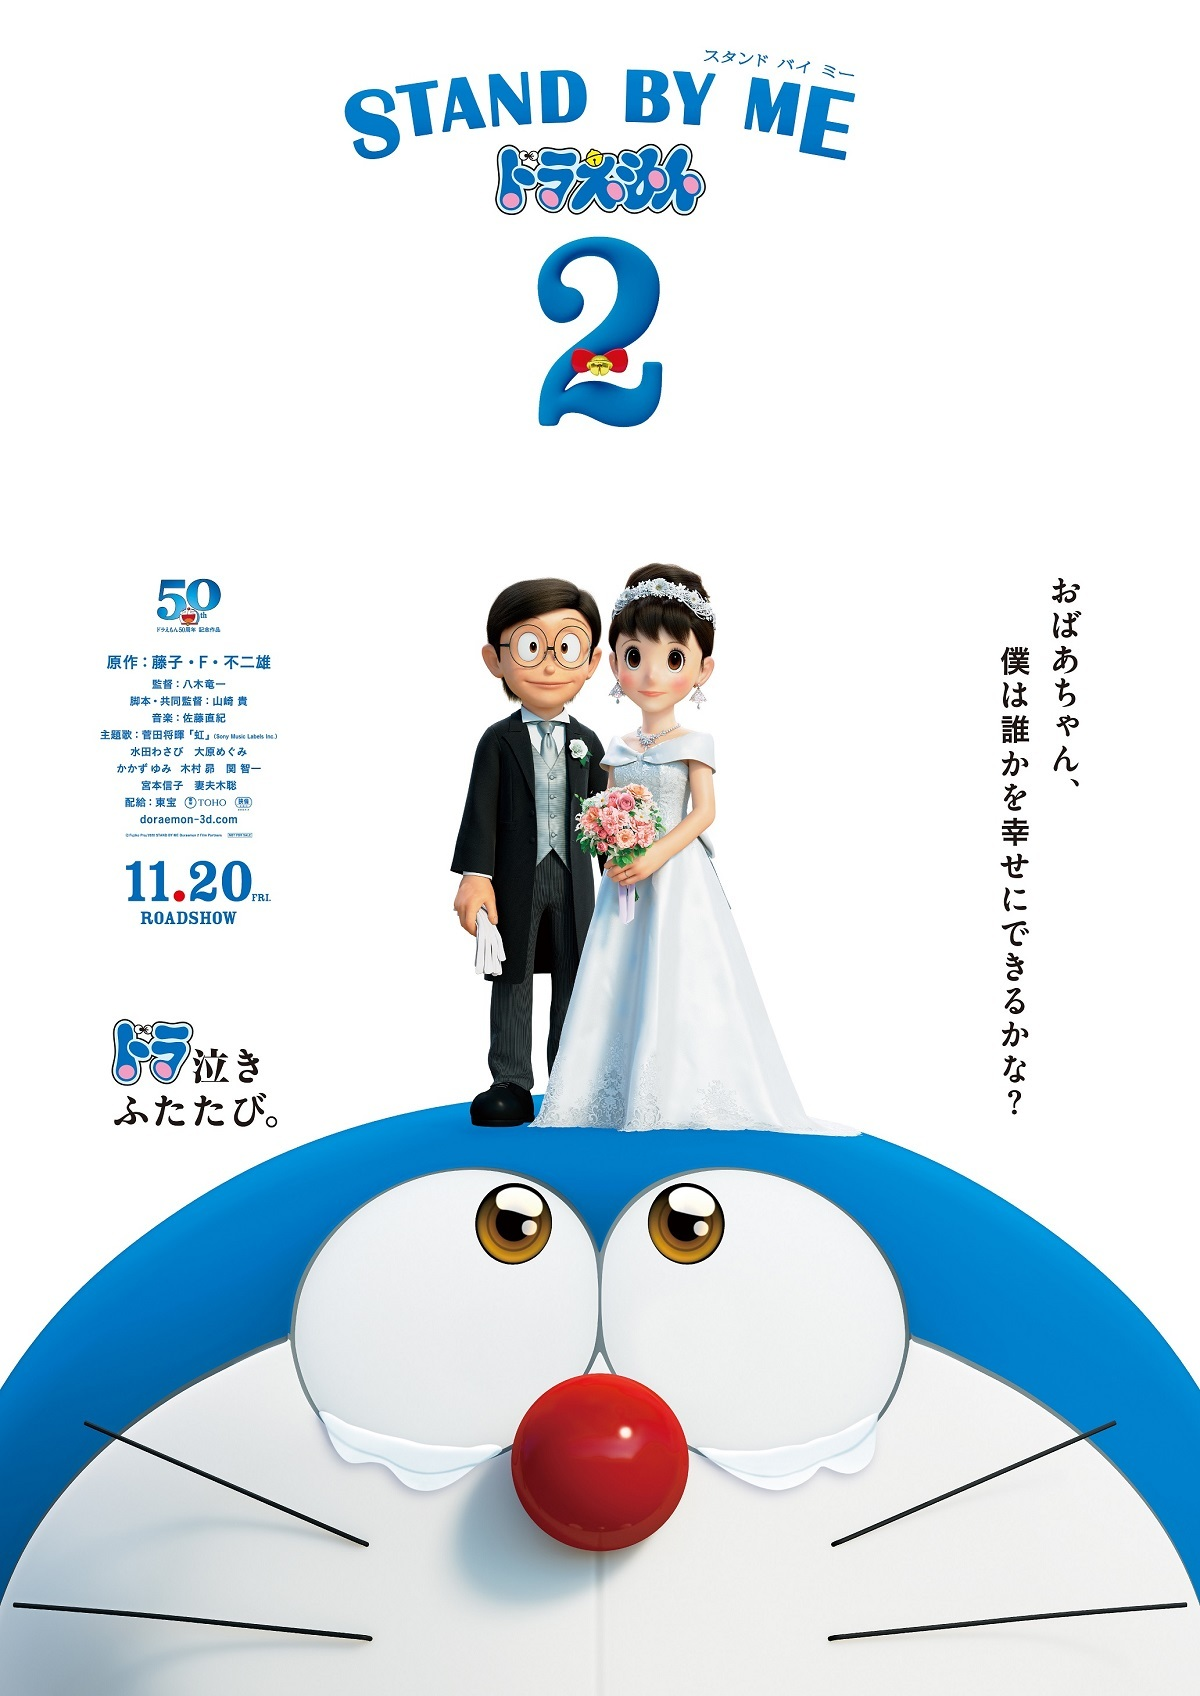 ©Fujiko Pro/2020 STAND BY ME Doraemon 2 Film Partners